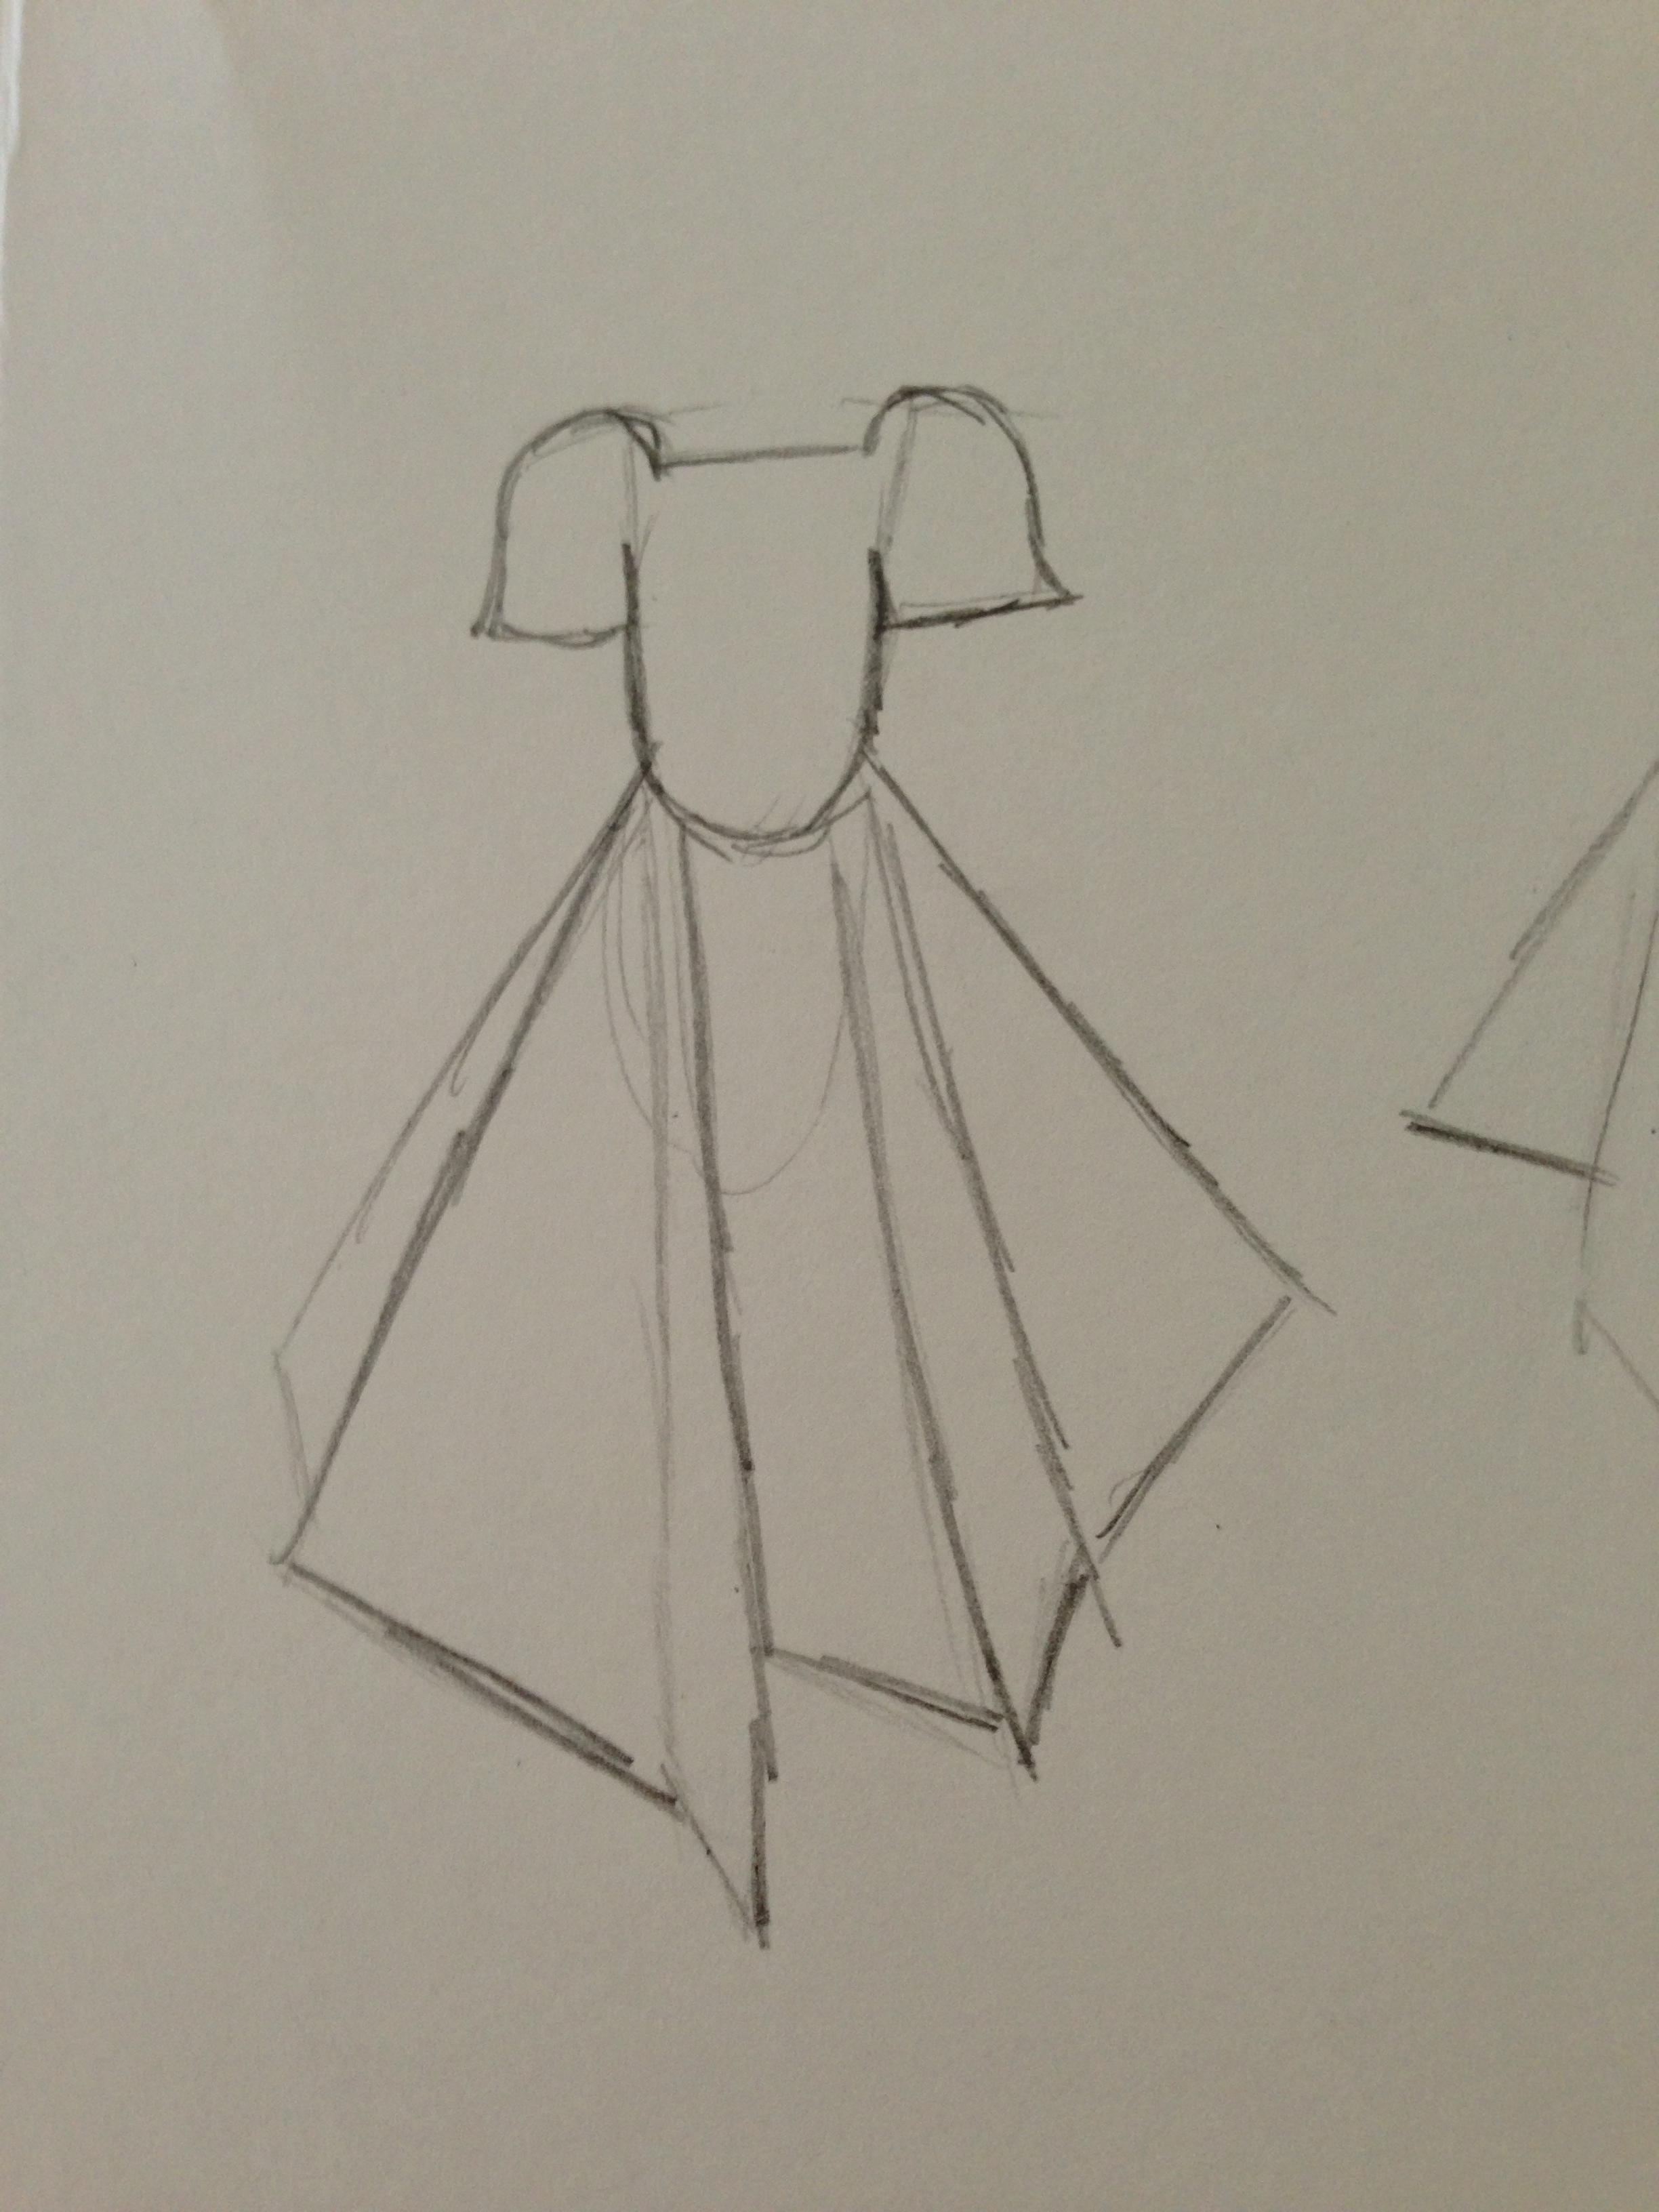 WATERCOLOR -- Dresses that Inspire - image 20 - student project